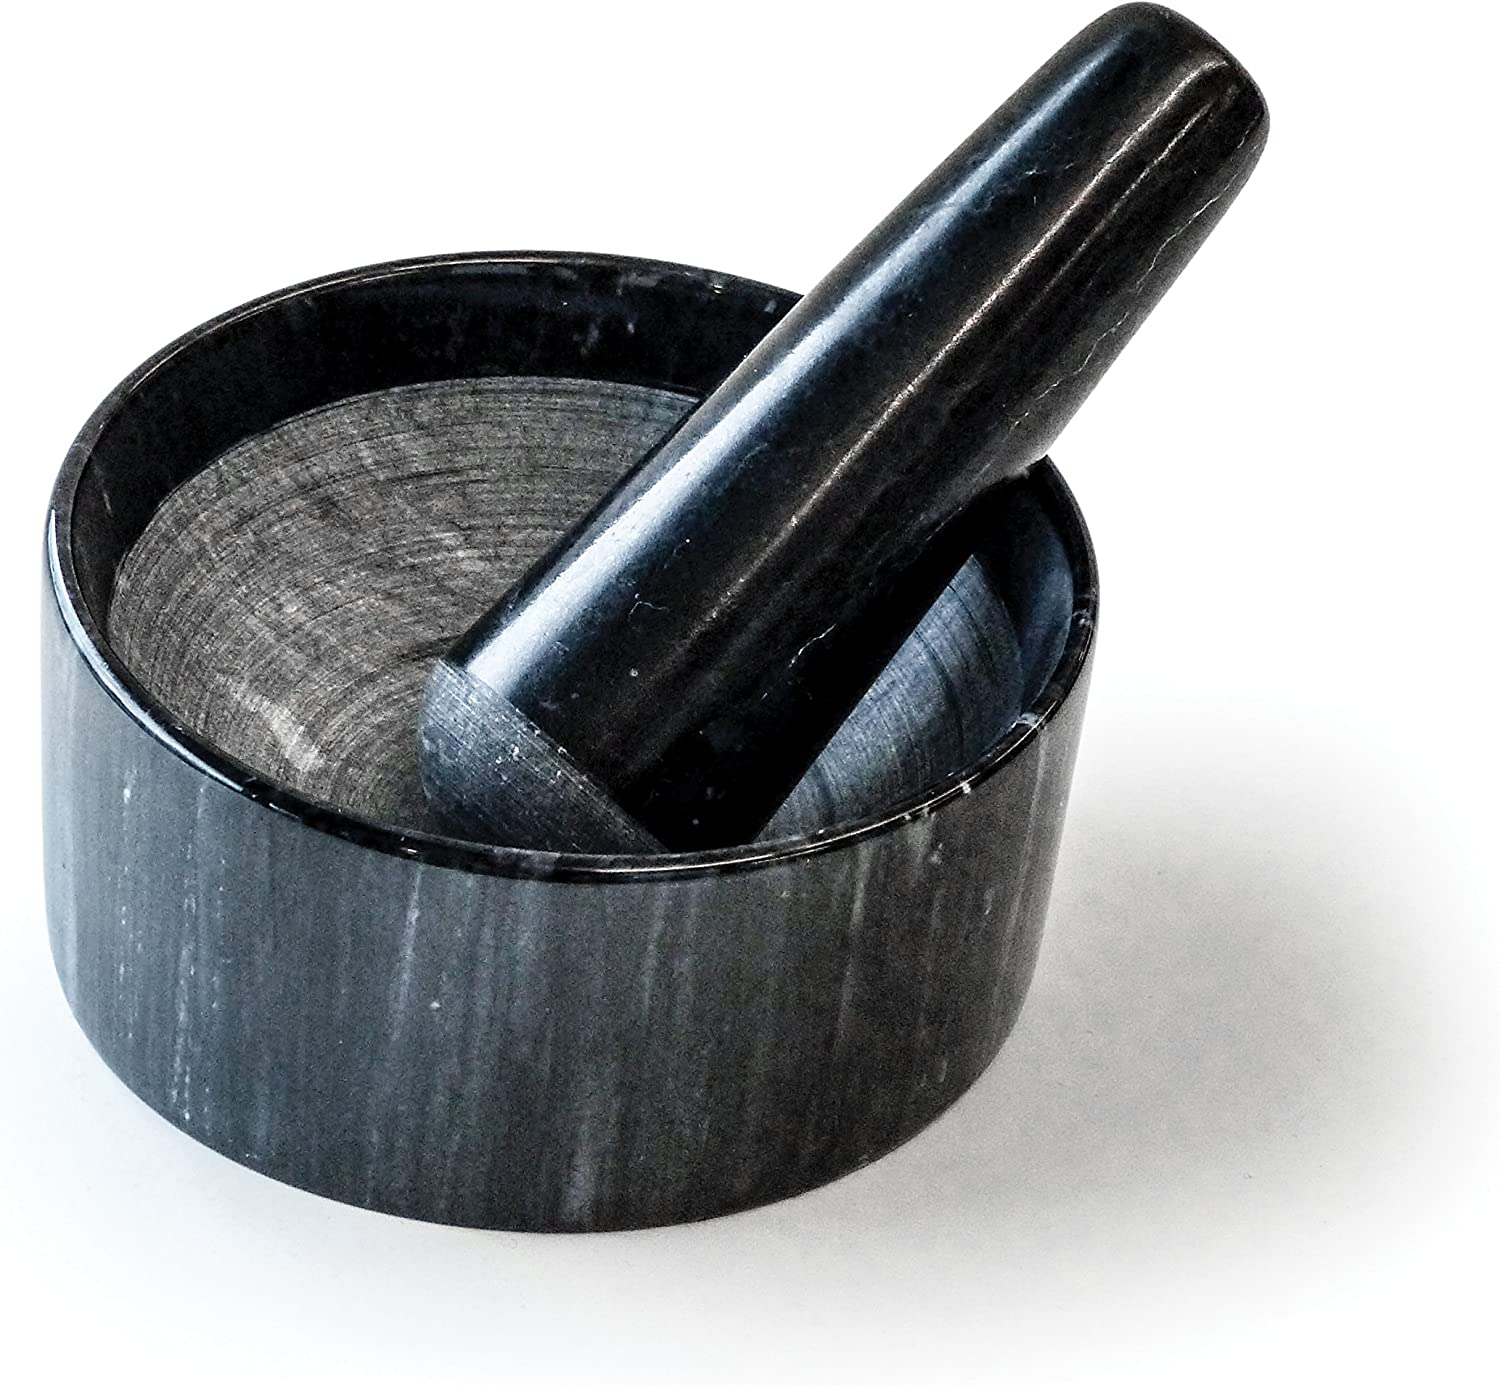 Rsvp International Black Marble Mortar Pestle 6 Ounce Grind Spices Powder Pesto Mash Herbs Crush Pills Unique Marble Design Kitchen Dining